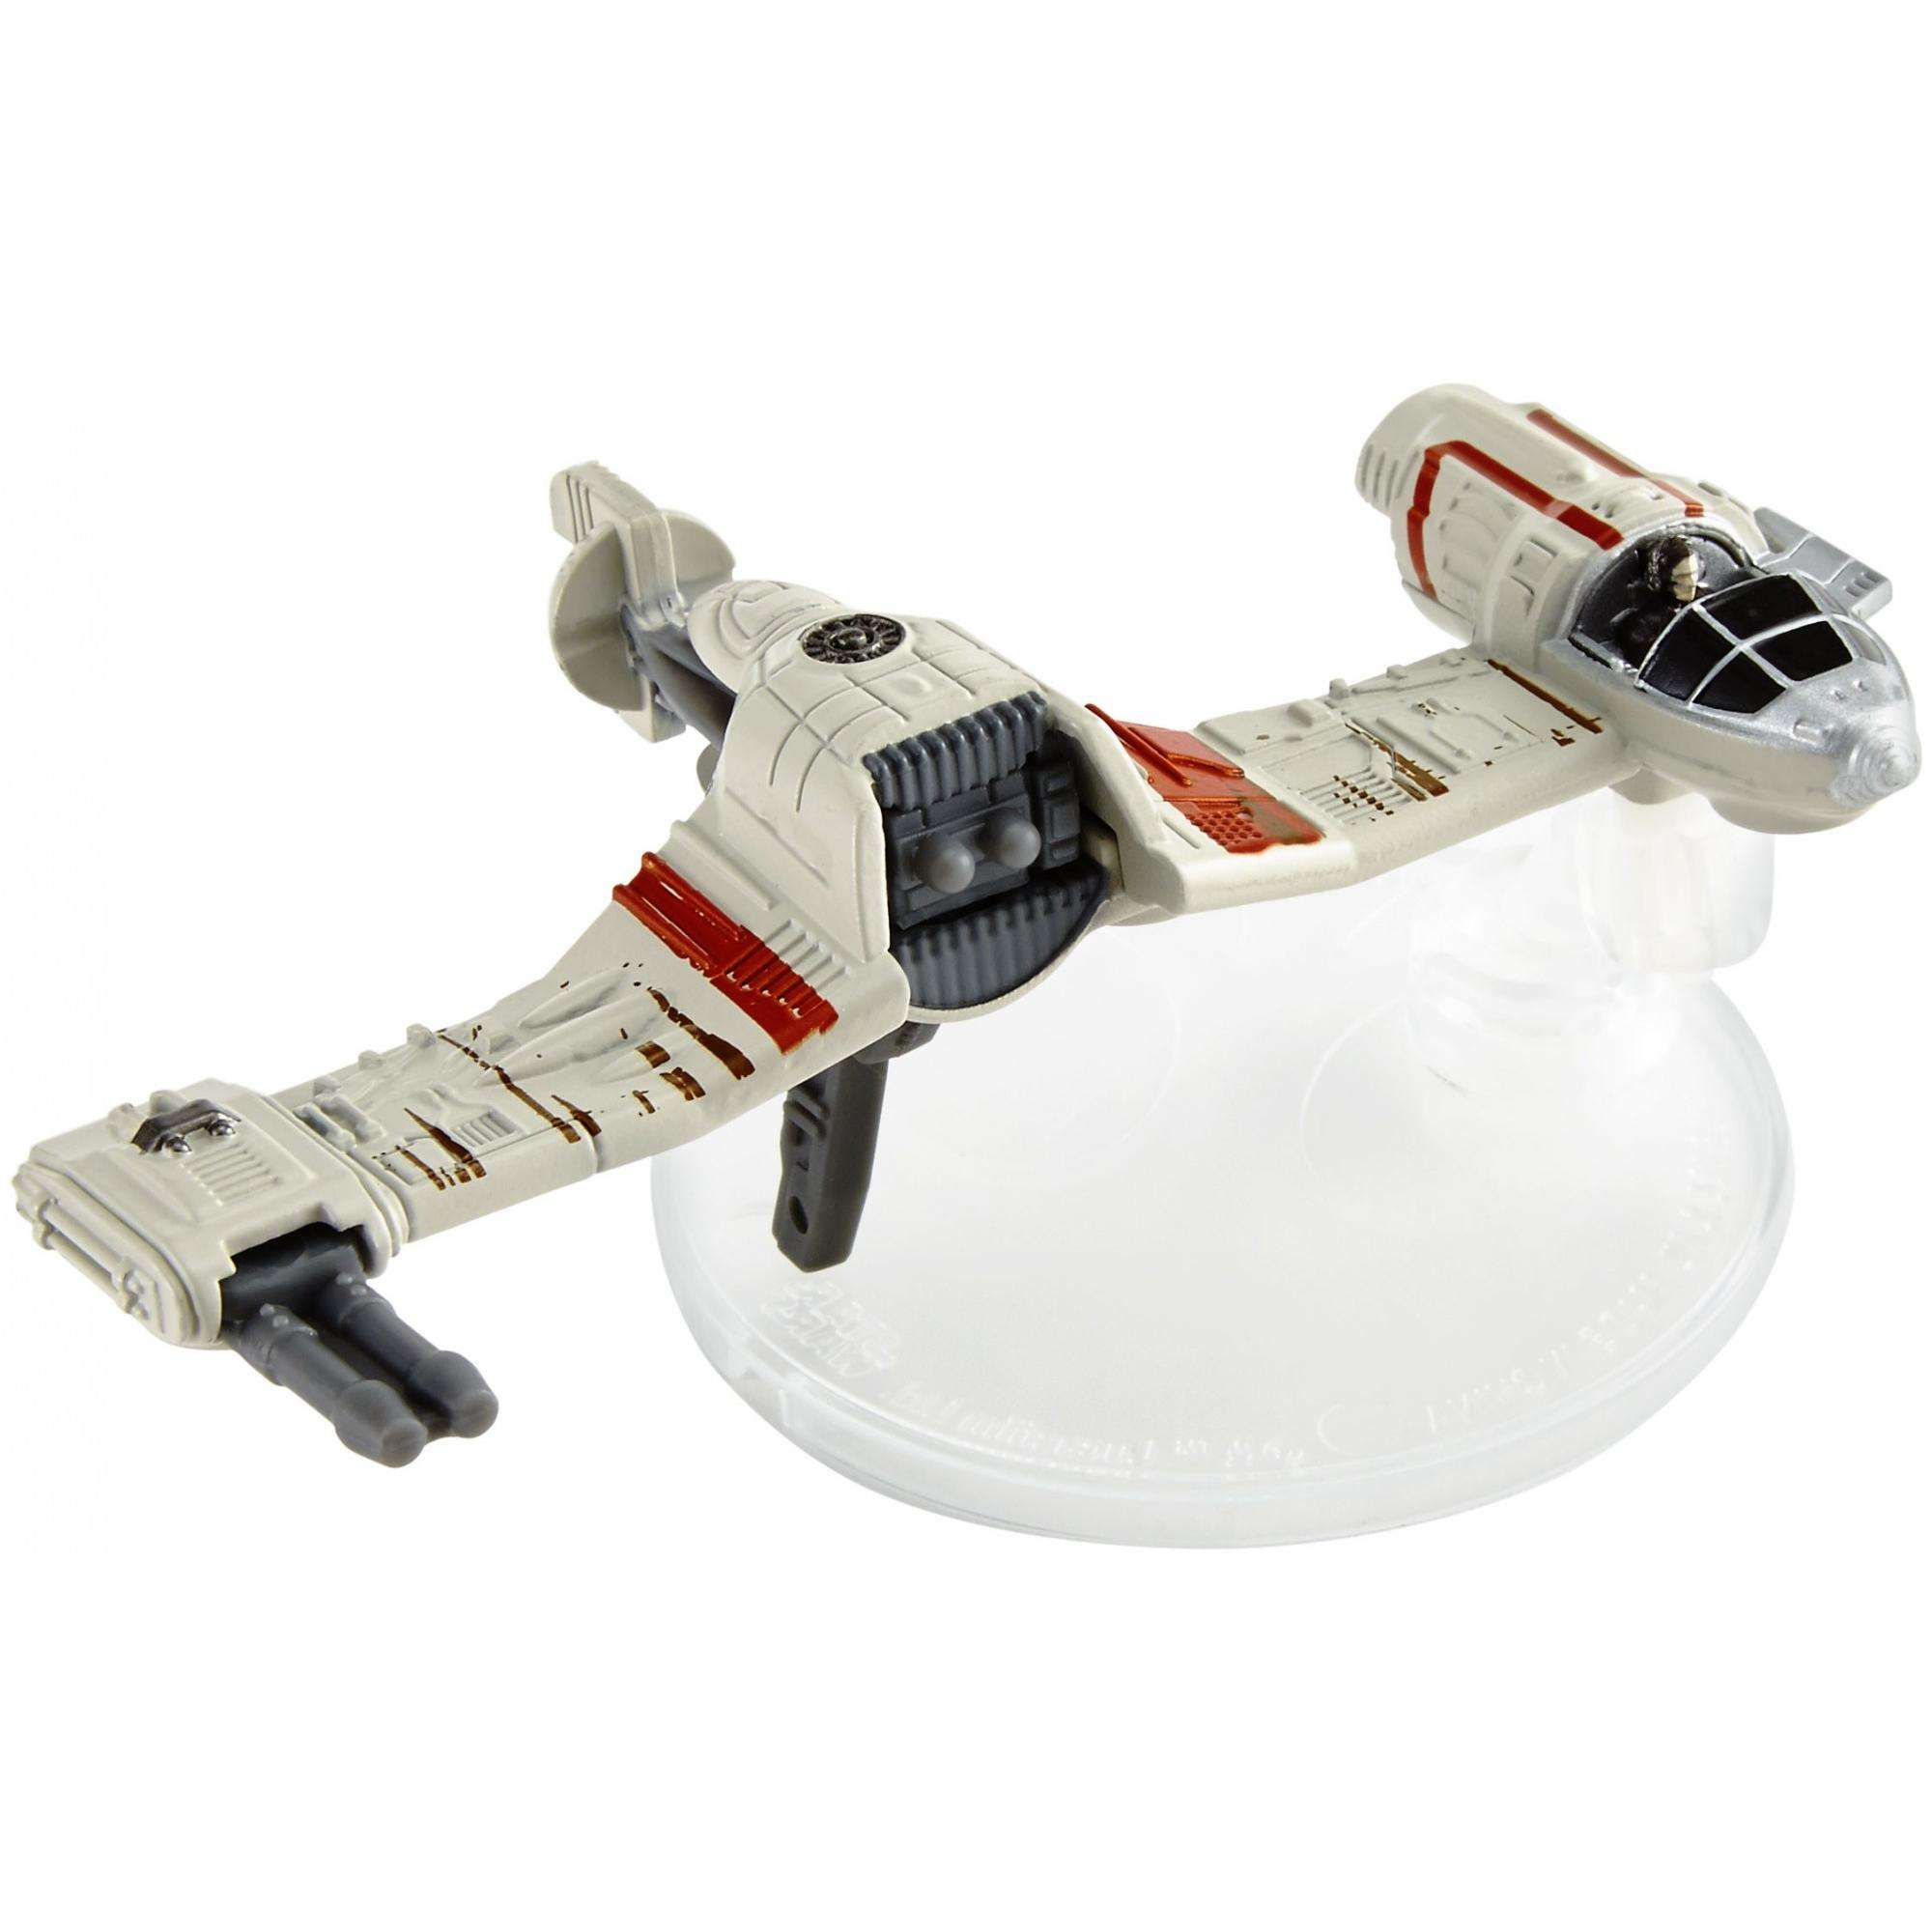 Hot Wheels Star Wars: The Last Jedi Crait Speeder, Starship